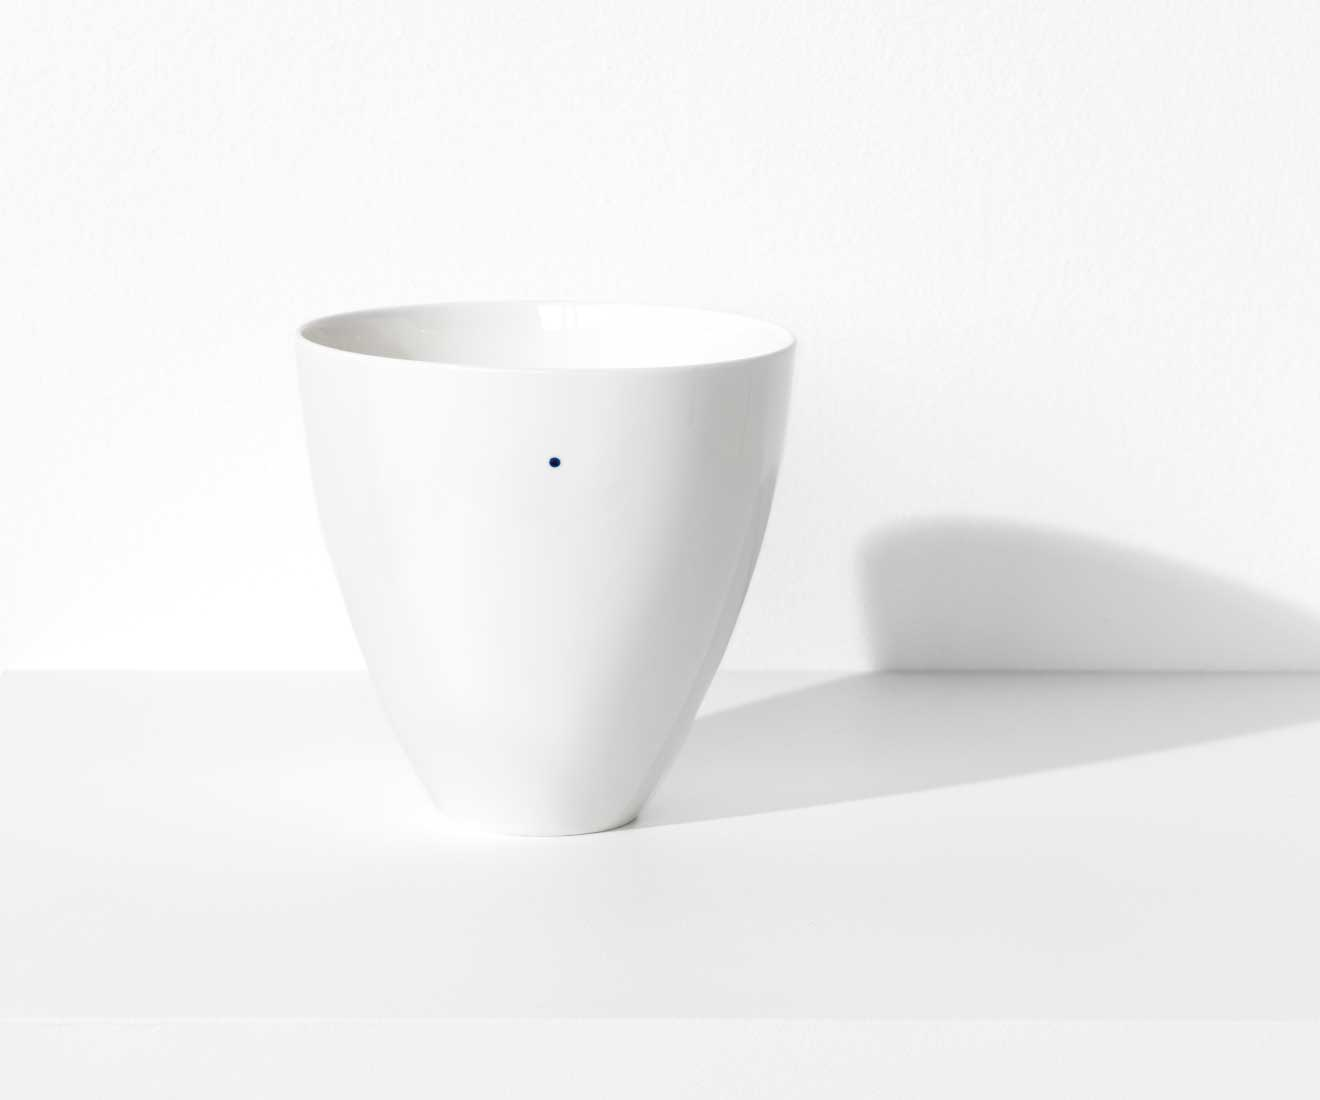 Motarasu Products - Shiro bowls Large with 1 dot by Stilleben